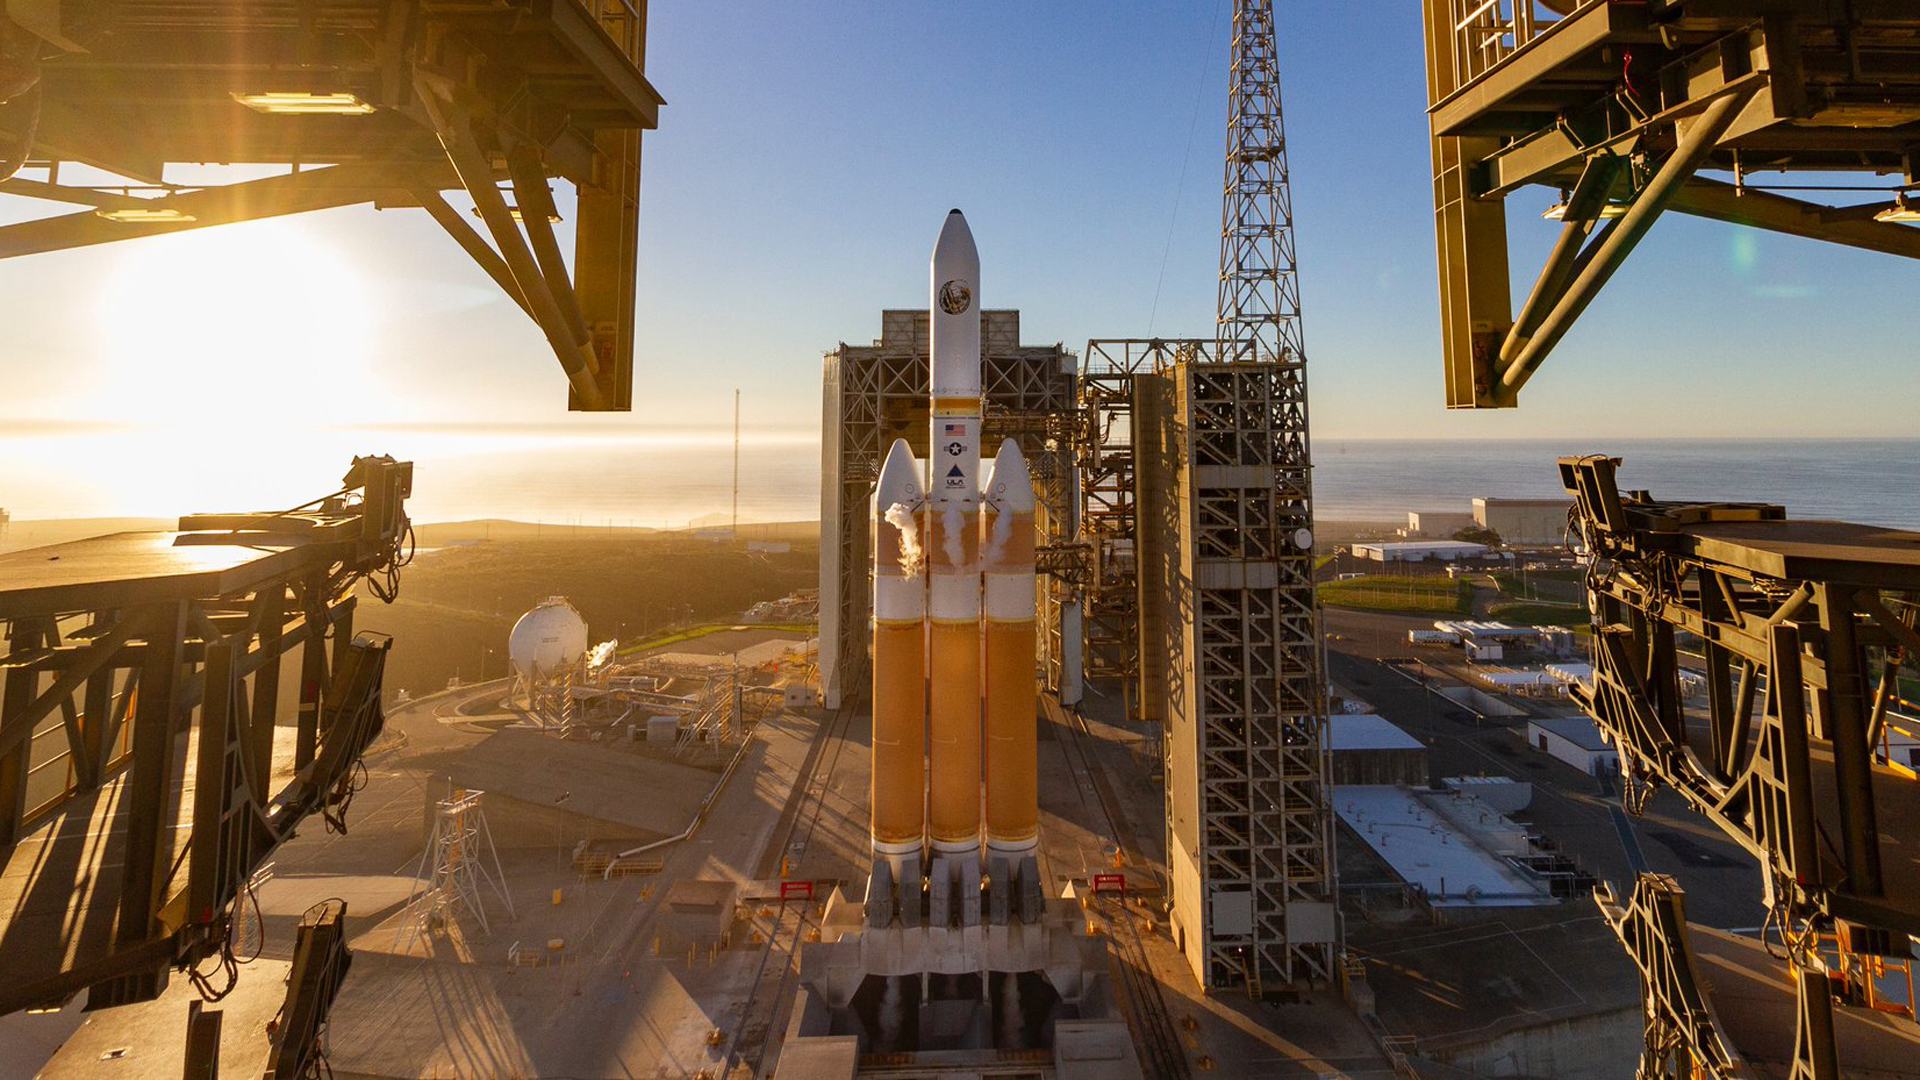 A Delta Heavy IV rocket sits on the launch pad of Vandenberg Air Force Base on Dec. 19, 2018. (Credit: ULA)